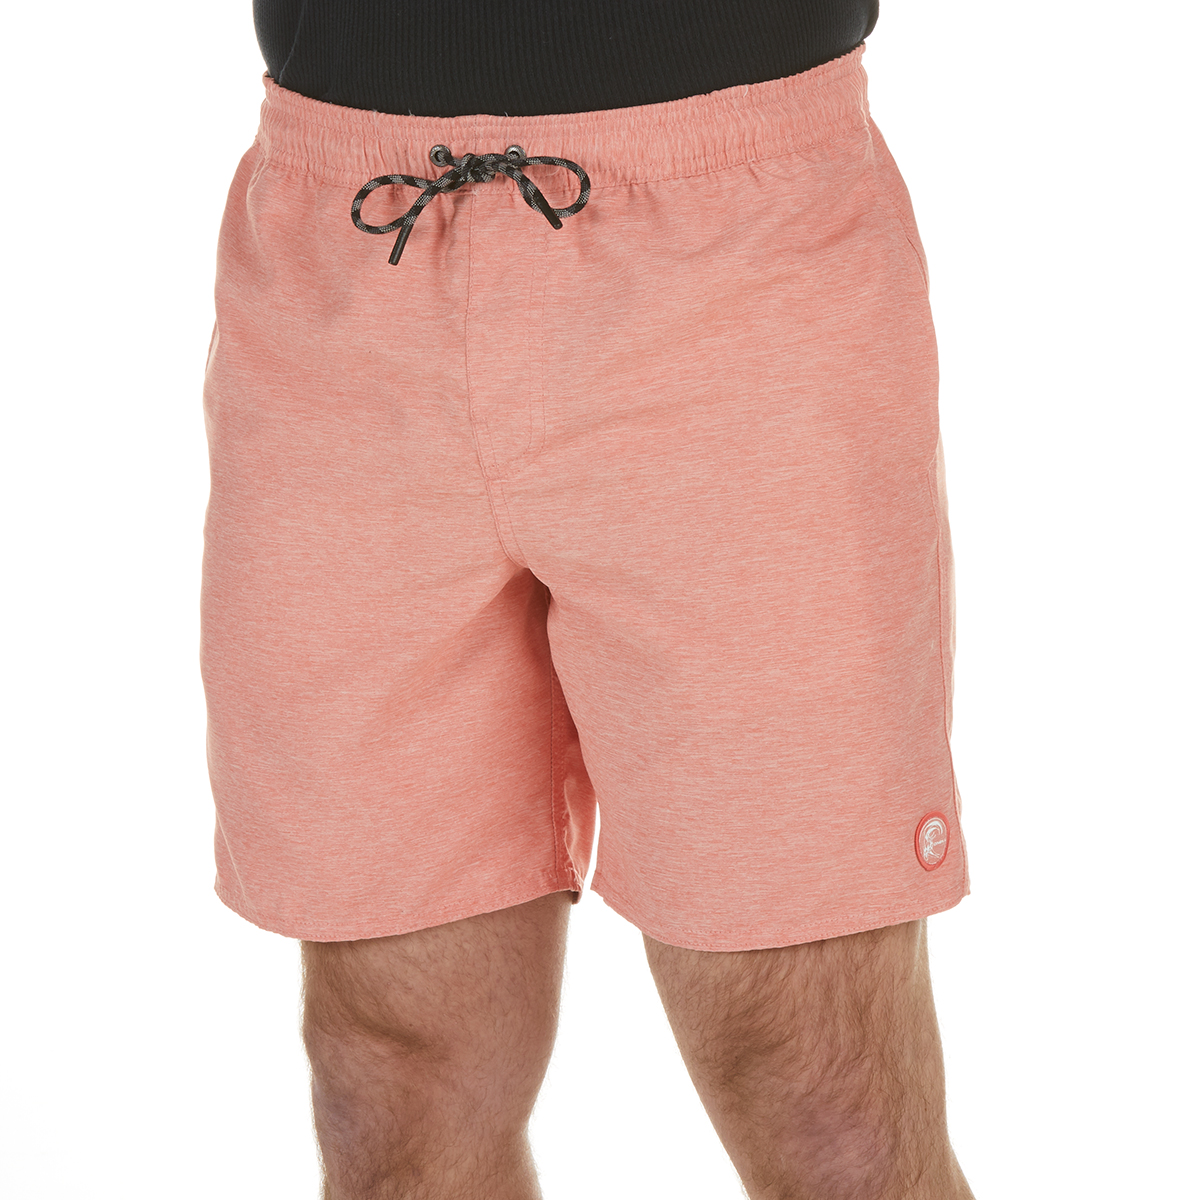 O'neill Young Men's Seabreeze Volley Boardshorts - Red, L